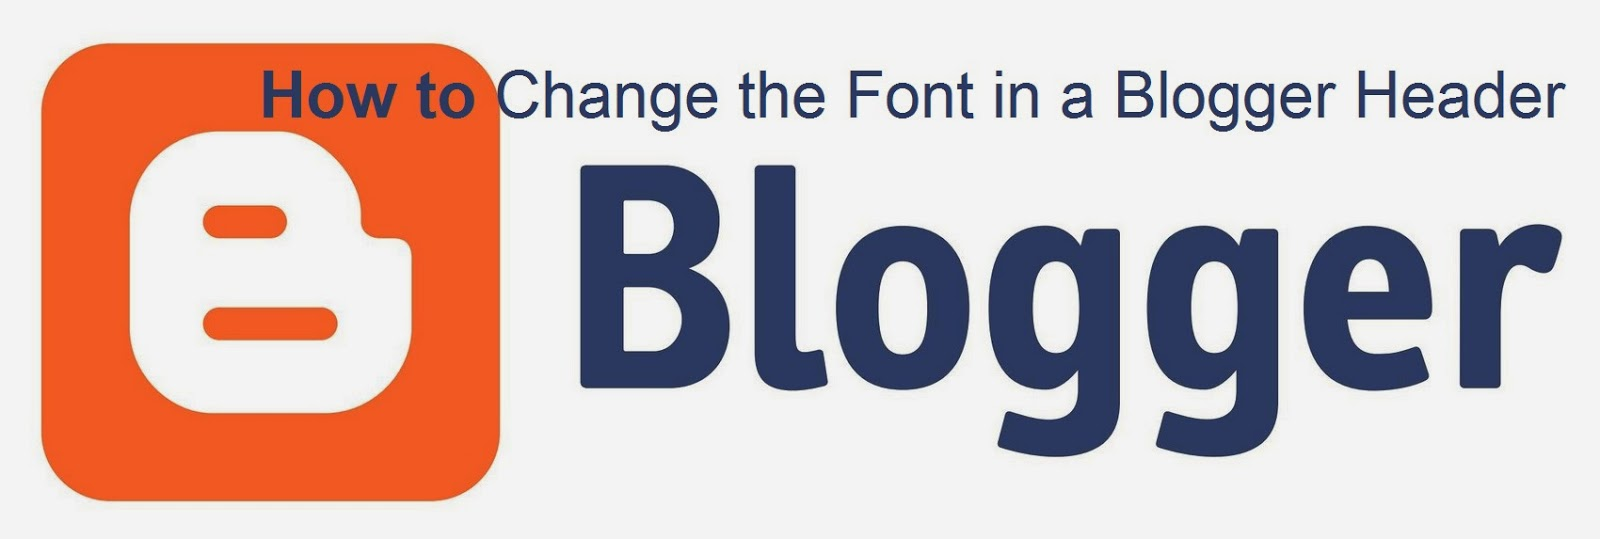 How to Change the Font in a Blogger Header : eAskme